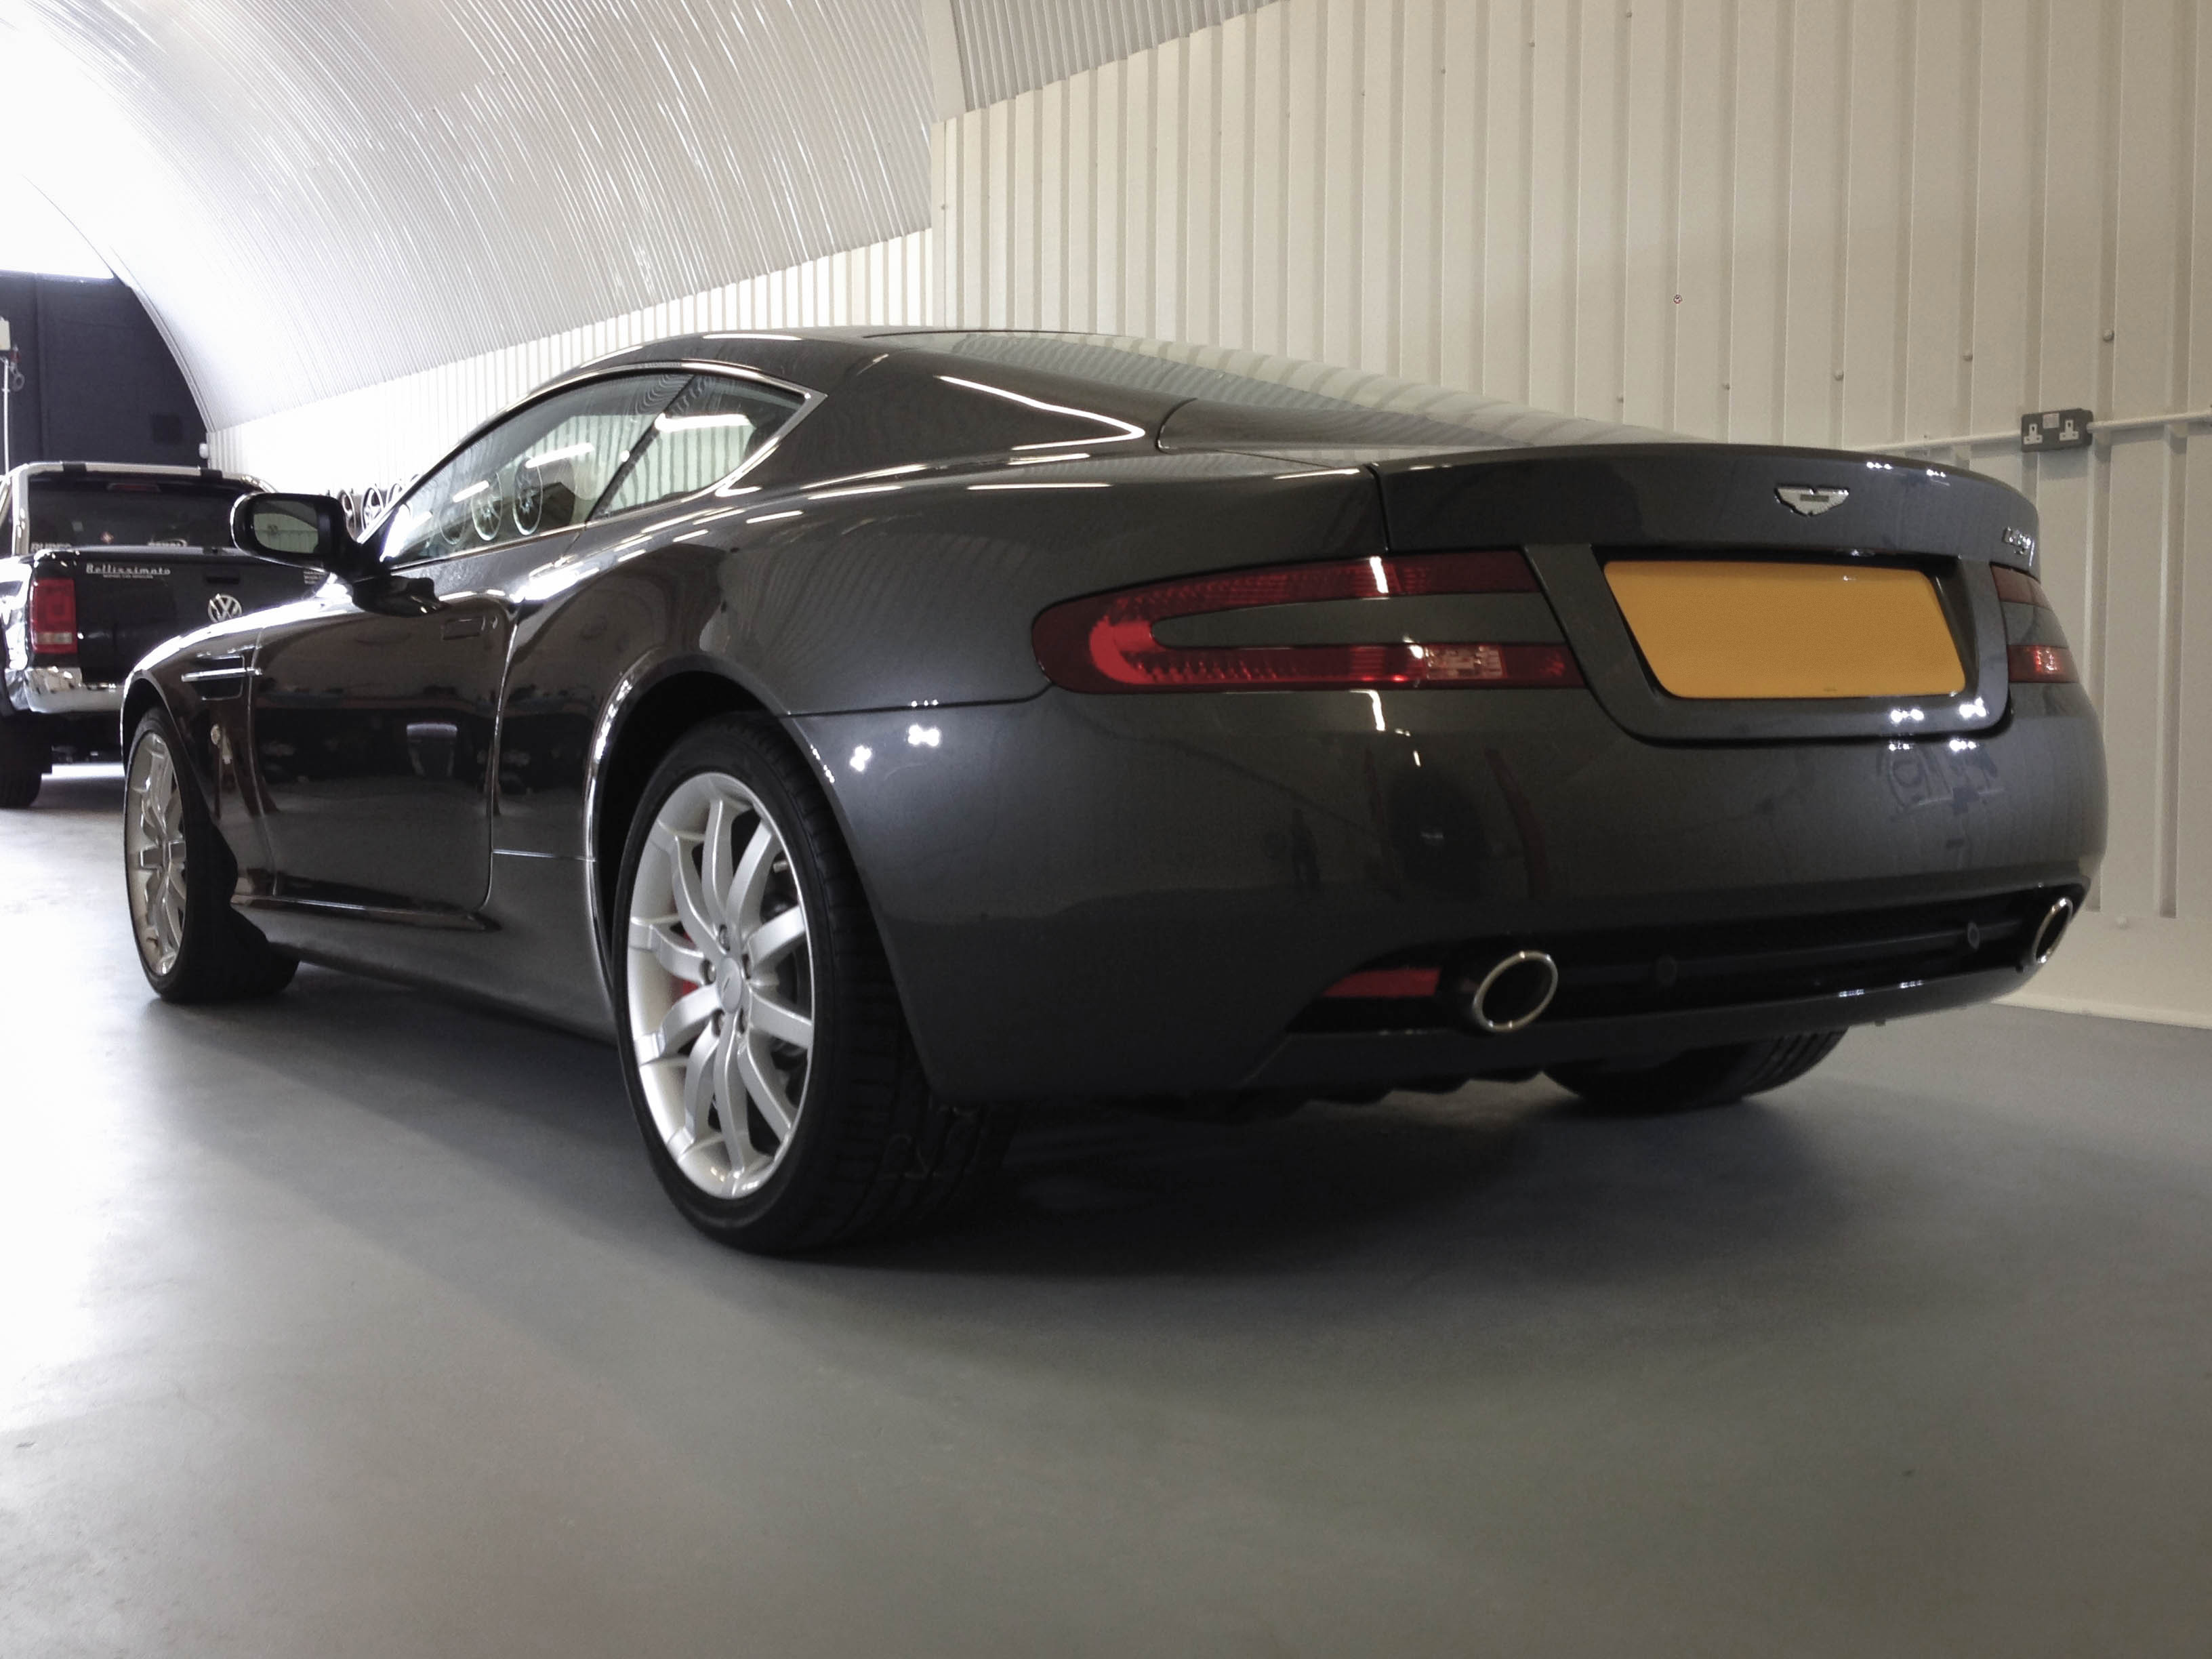 Aston Martin DB9 – Rear